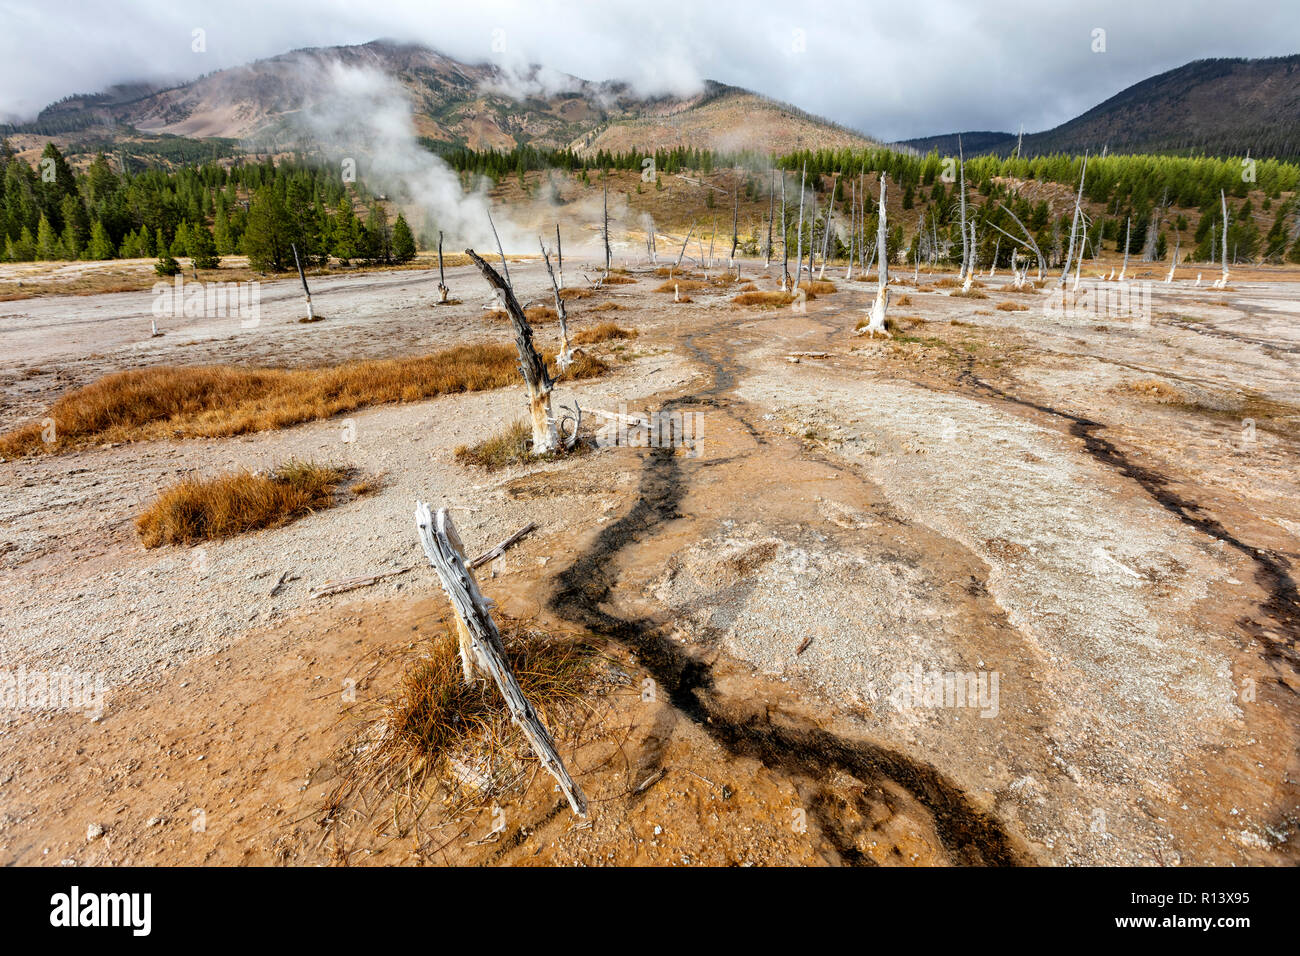 WY03579-00...WYOMING - Heart Lake Geyser Basin at the base of the Red Mountains in Yellowstone National Park. - Stock Image